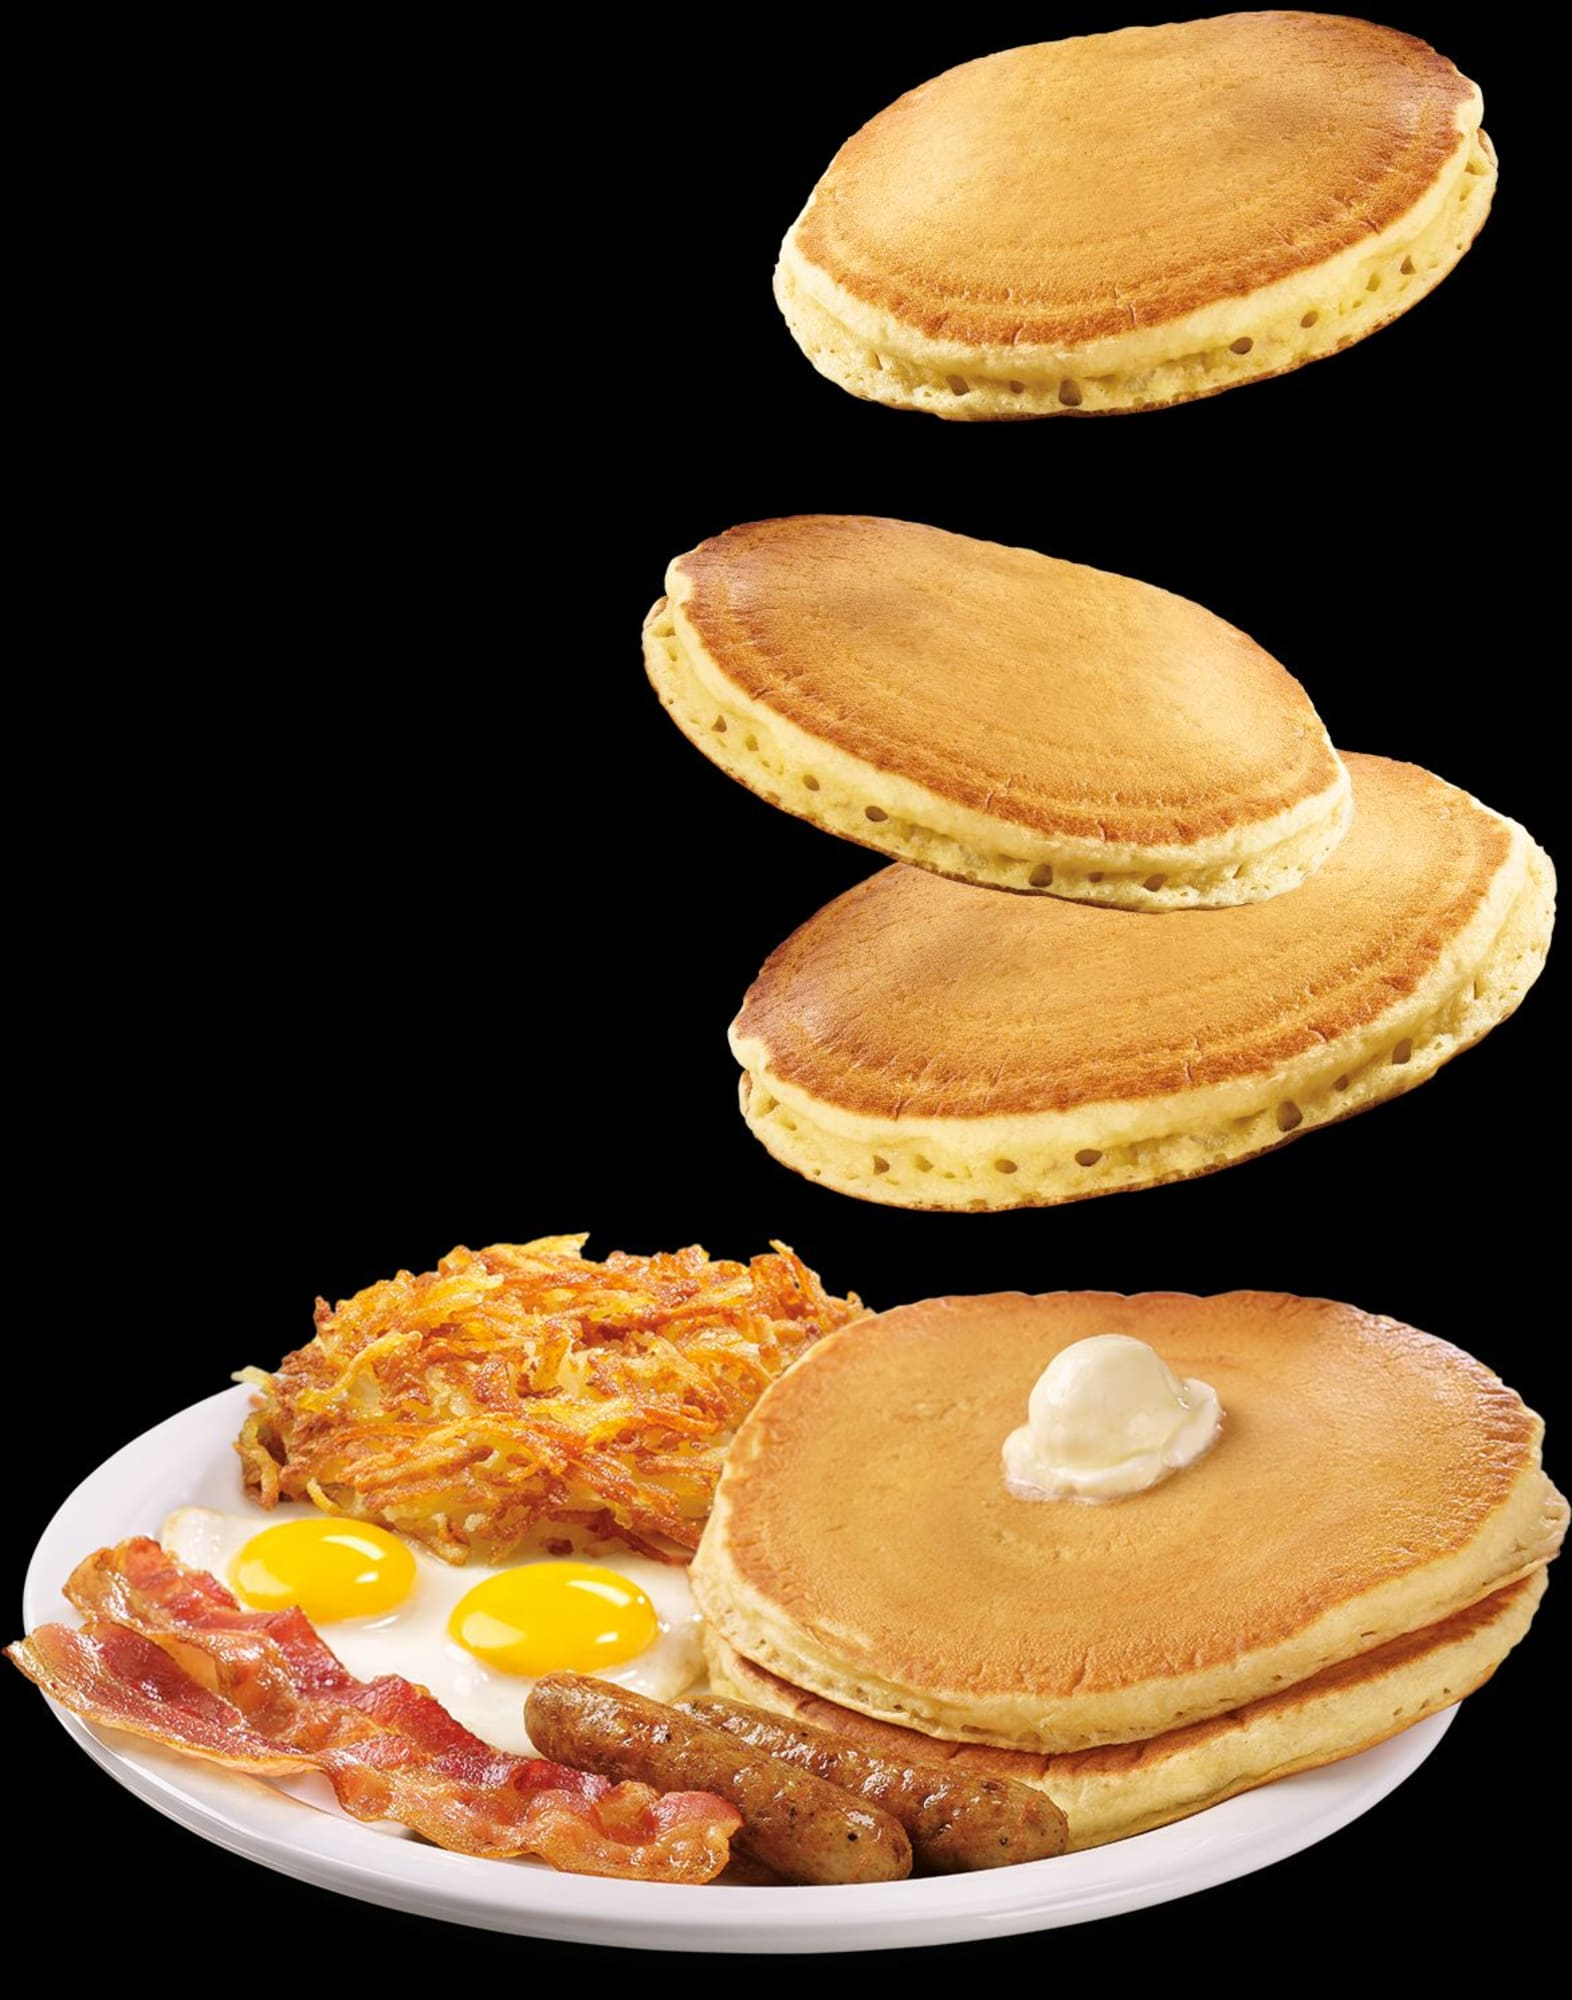 Denny's is offering a Grand Slam of a deal with this BOGO offer